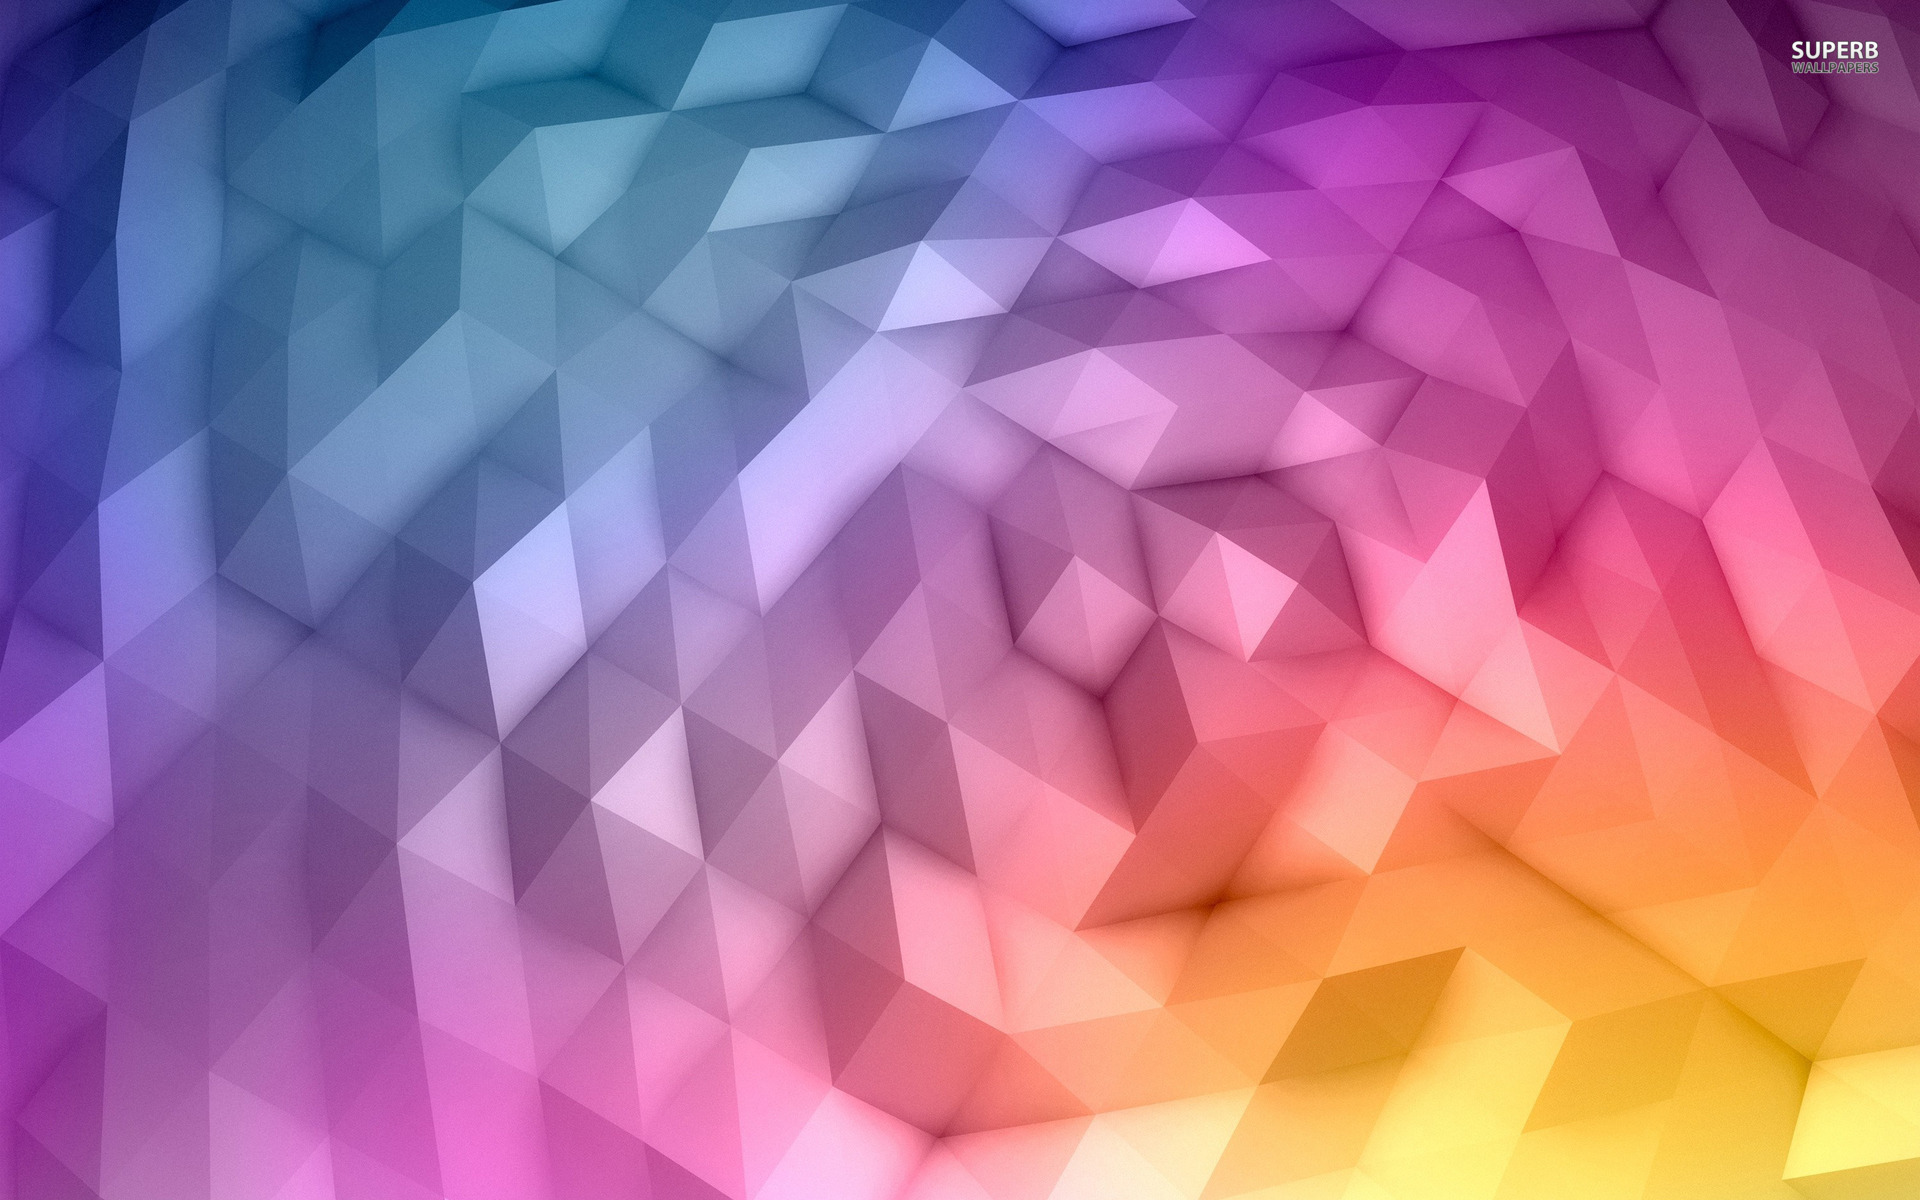 Gradient polygons wallpaper 1920x1200